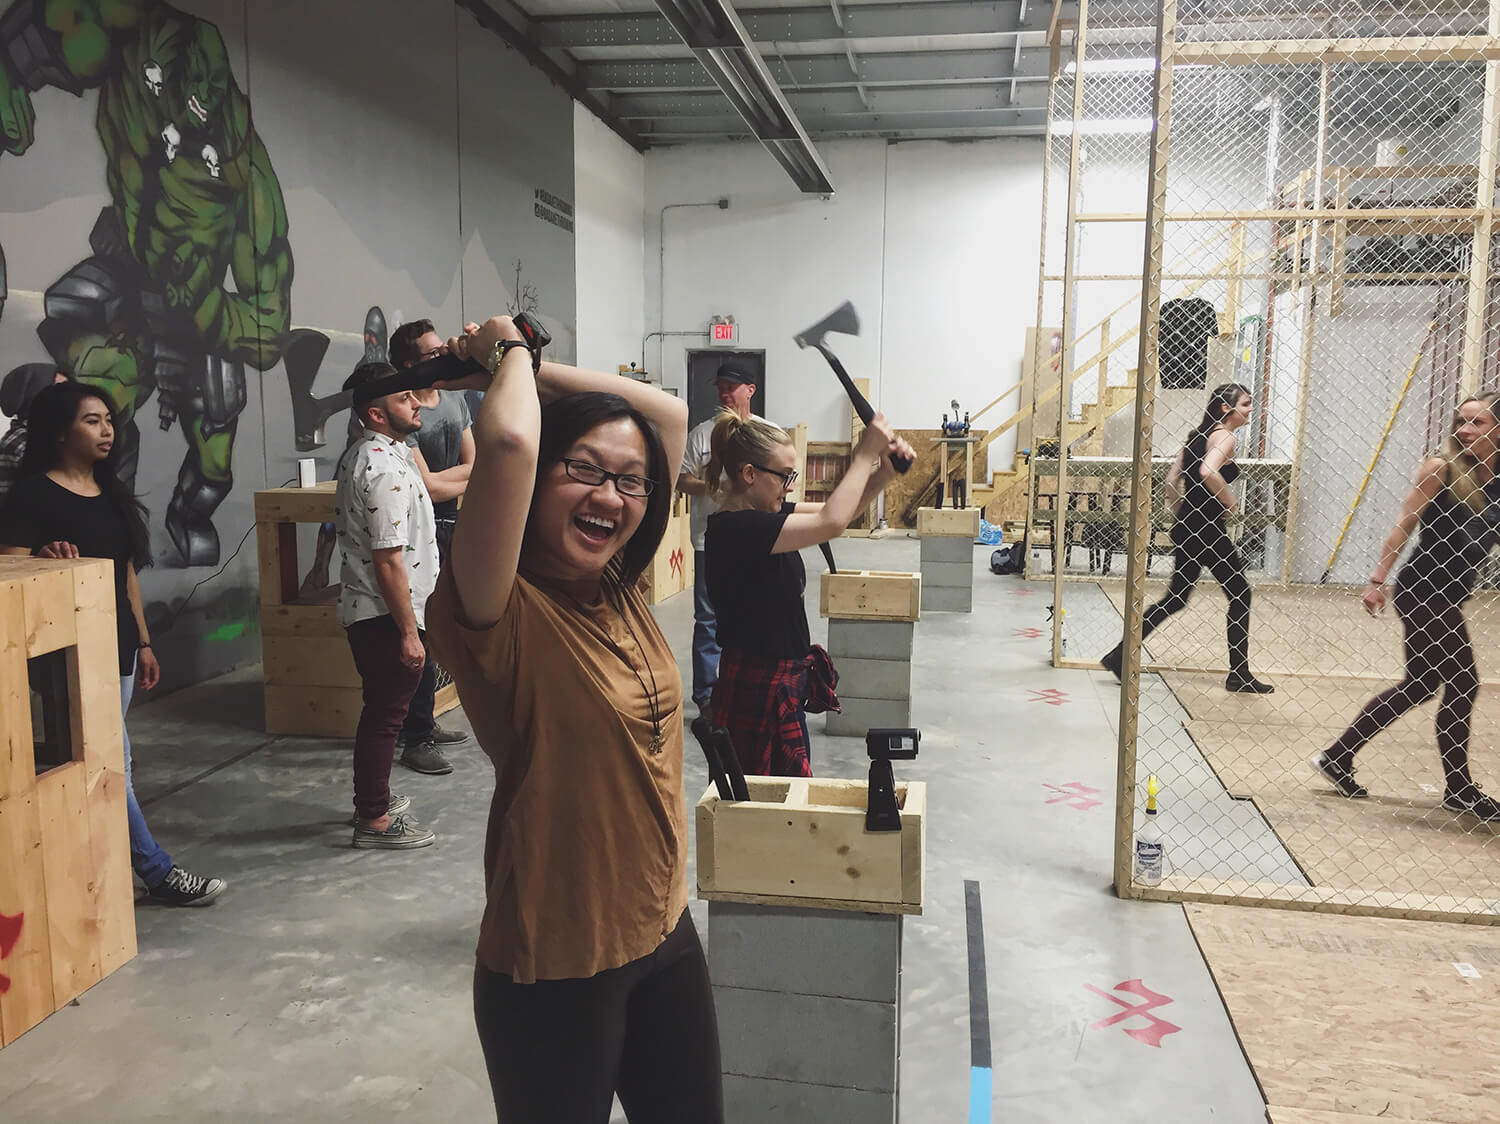 Bad Axe Throwing - Edmonton - Axe Throw